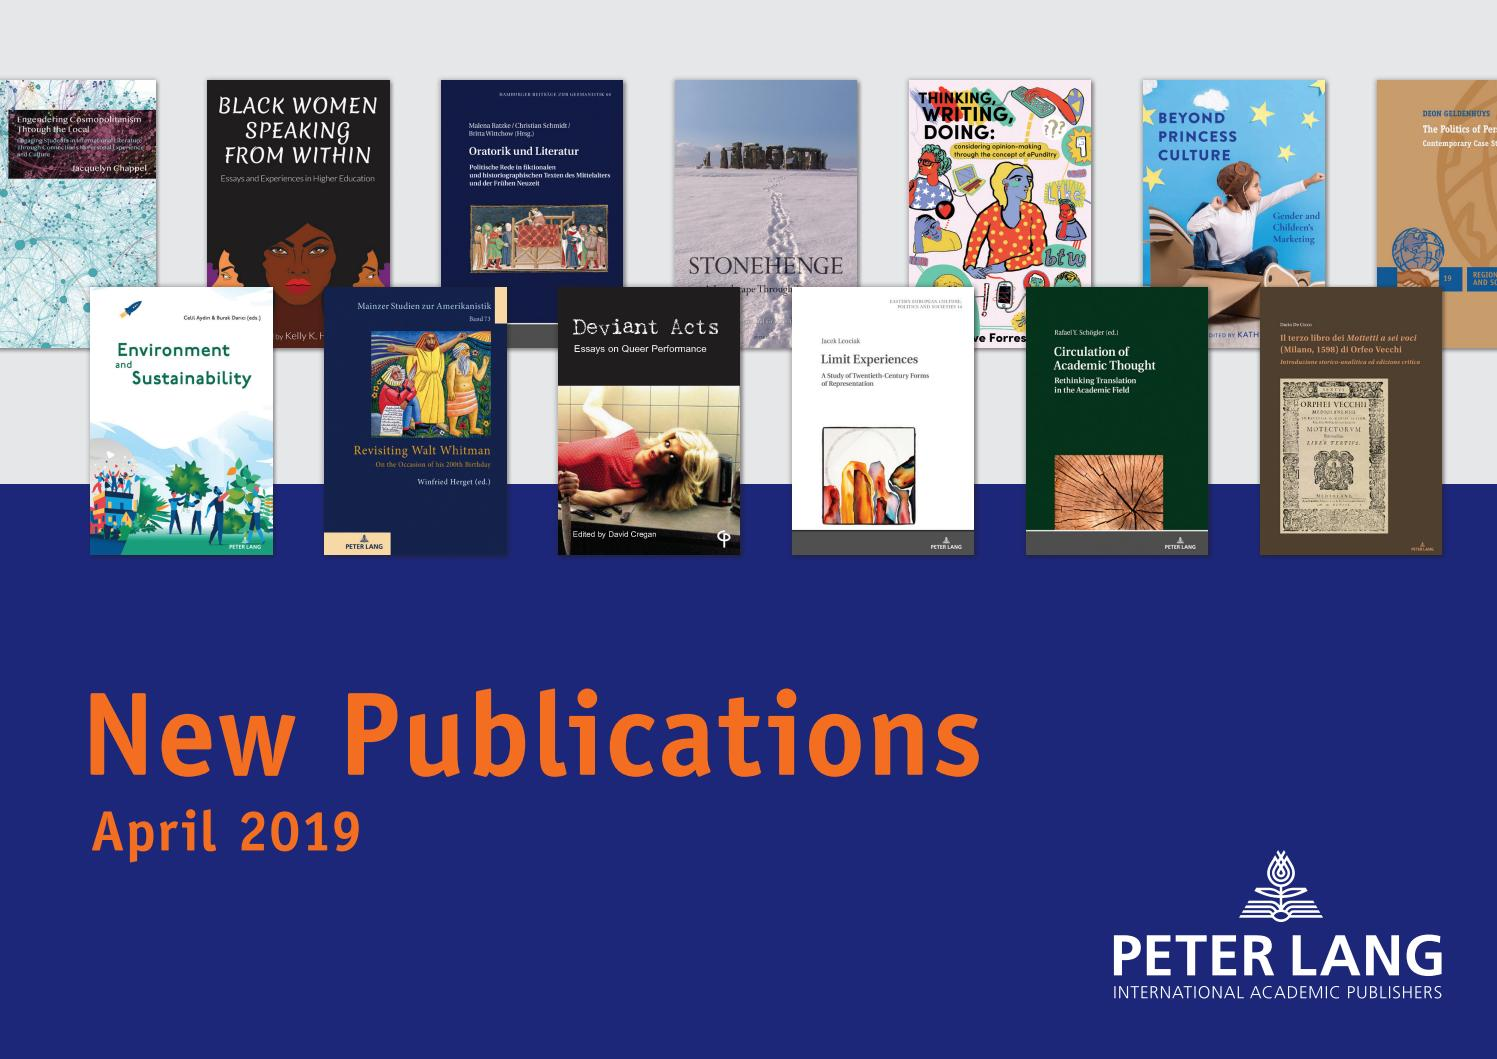 new publications april 2019 by peter lang publishing group  data systems austria ag in insolvenz #4